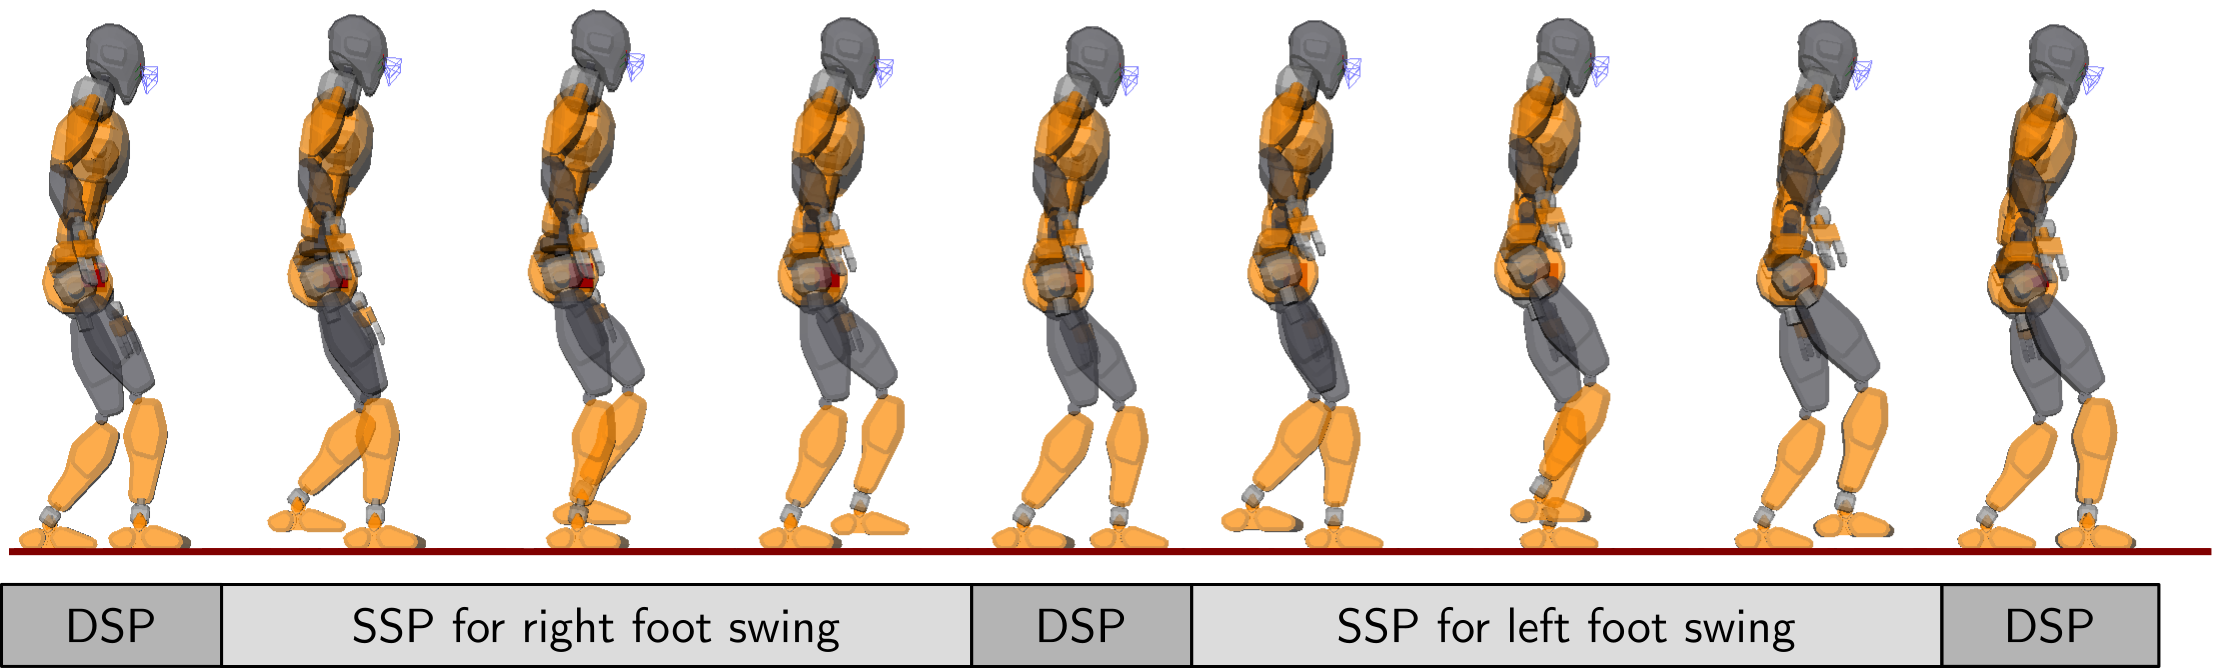 Single and double support phases while walking